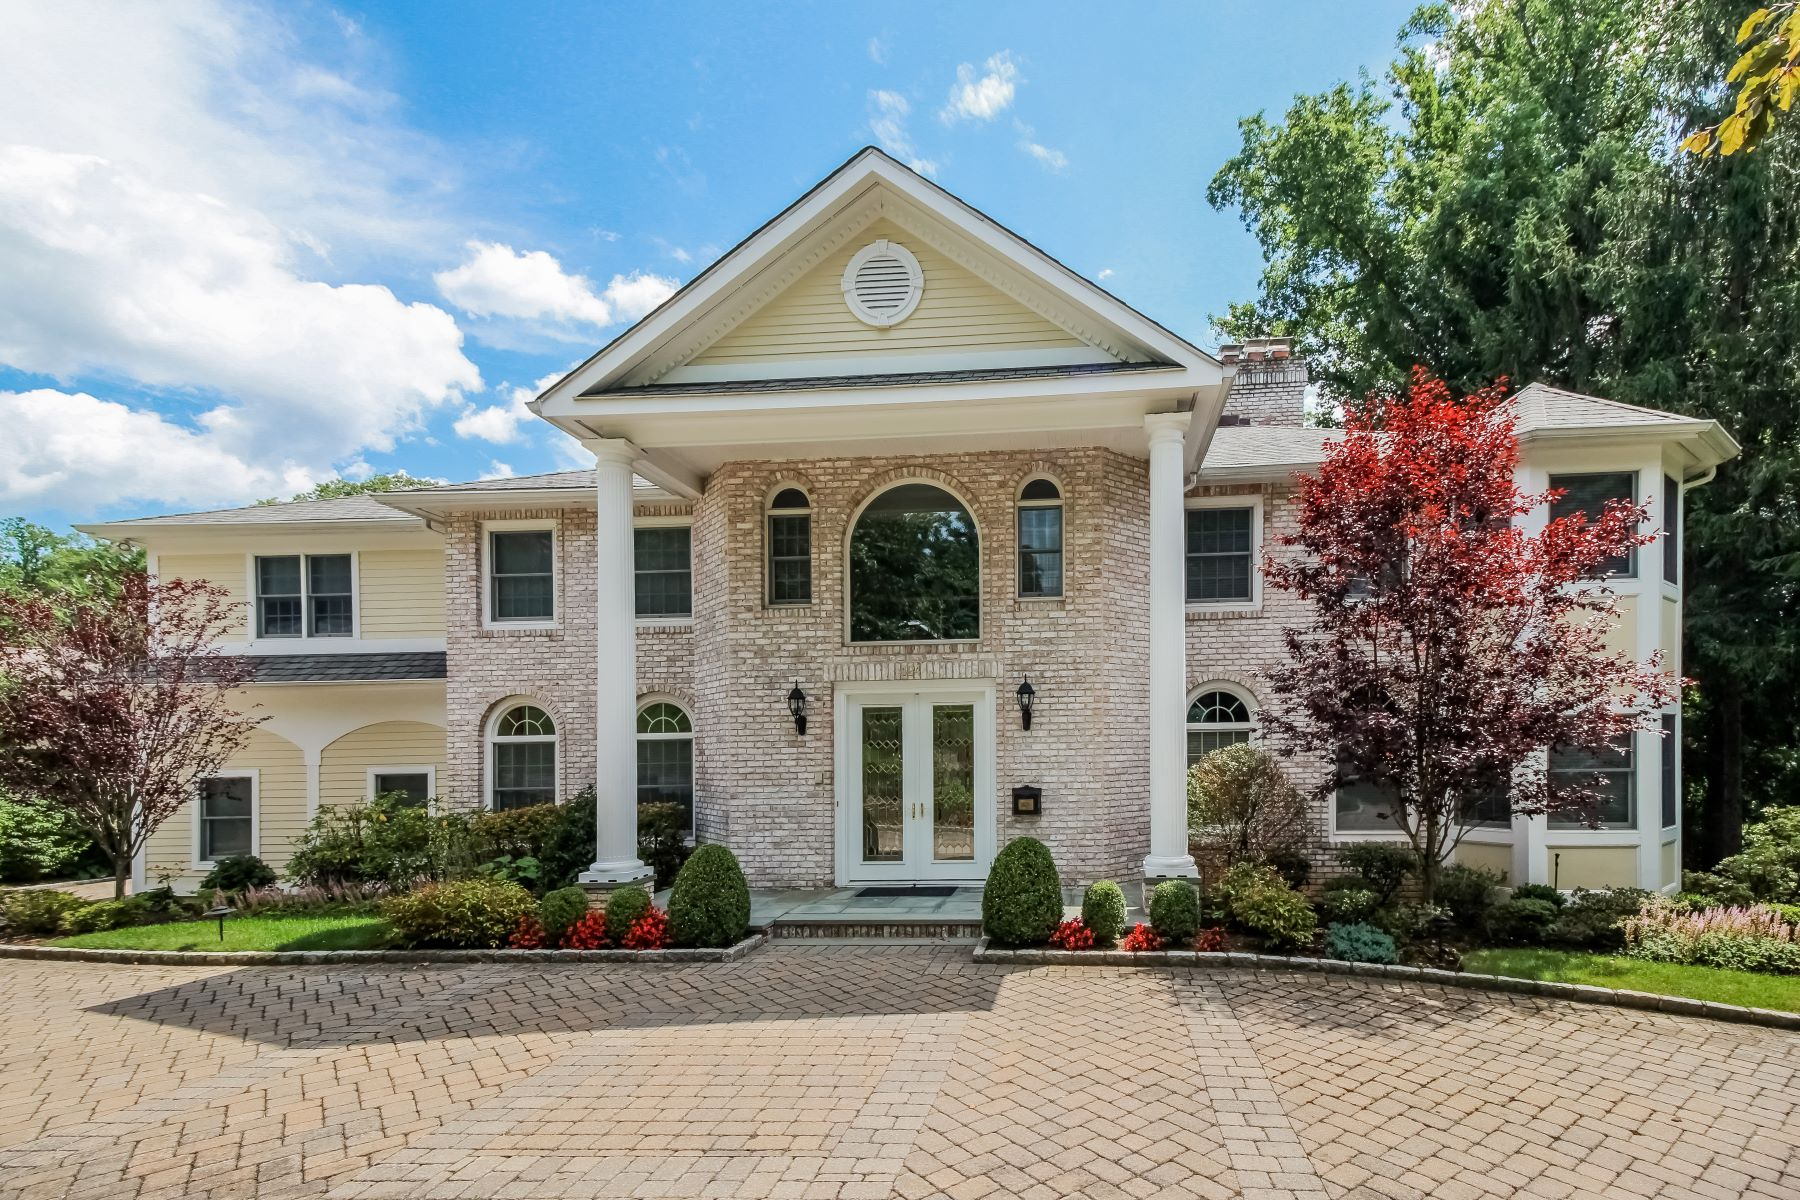 Single Family Home for Sale at Center Hall Colonial in Lake Isle Estates 124 North Lakeshore Drive Eastchester, New York 10709 United States